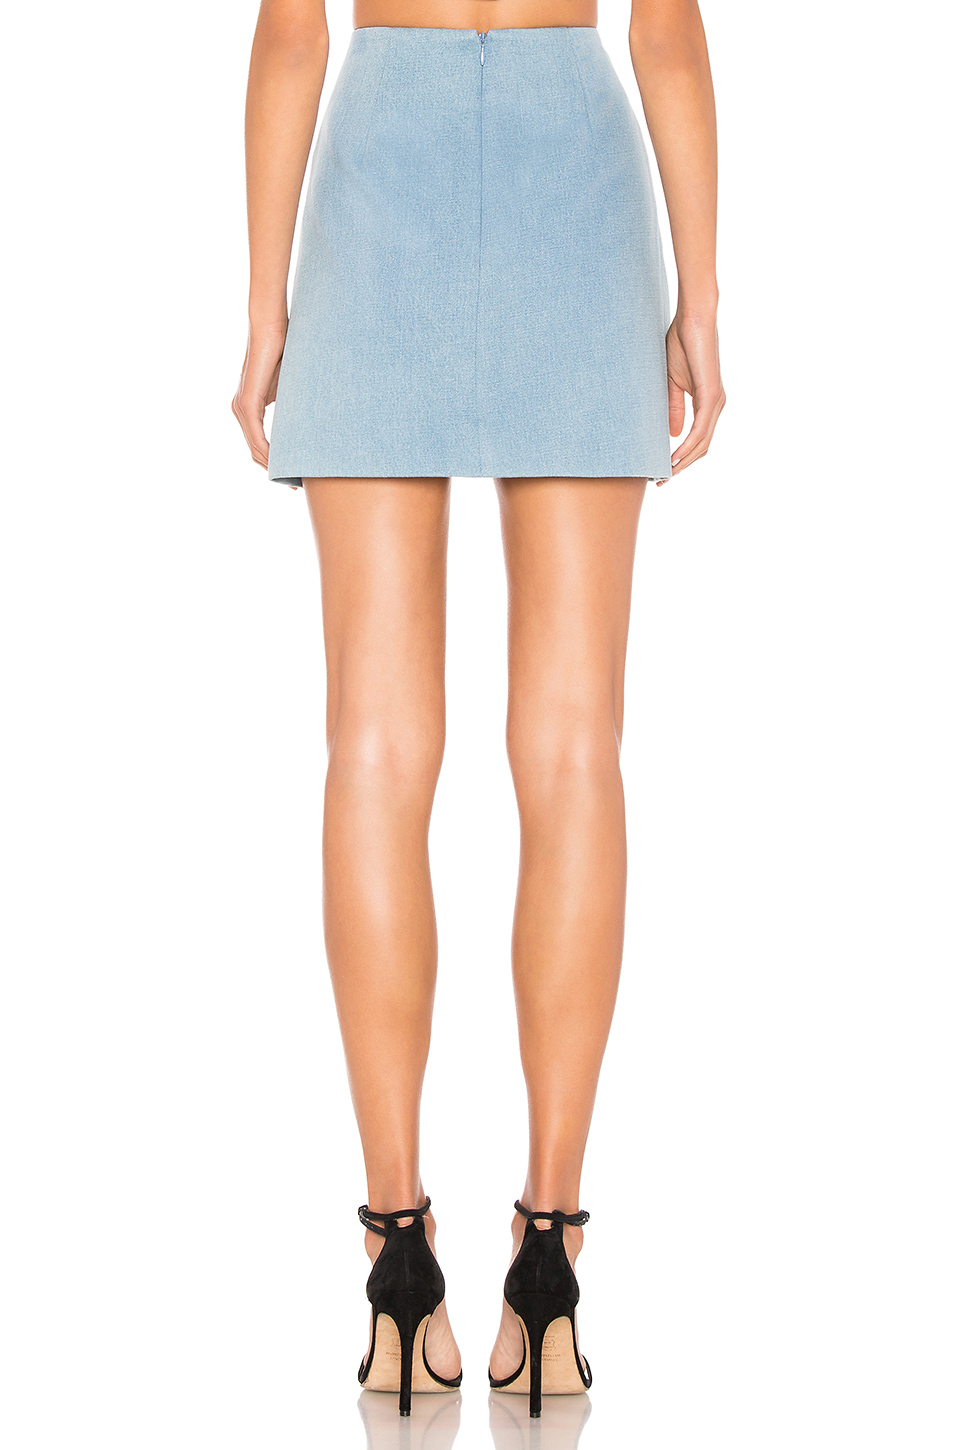 C/MEO Decoy Mini Skirt